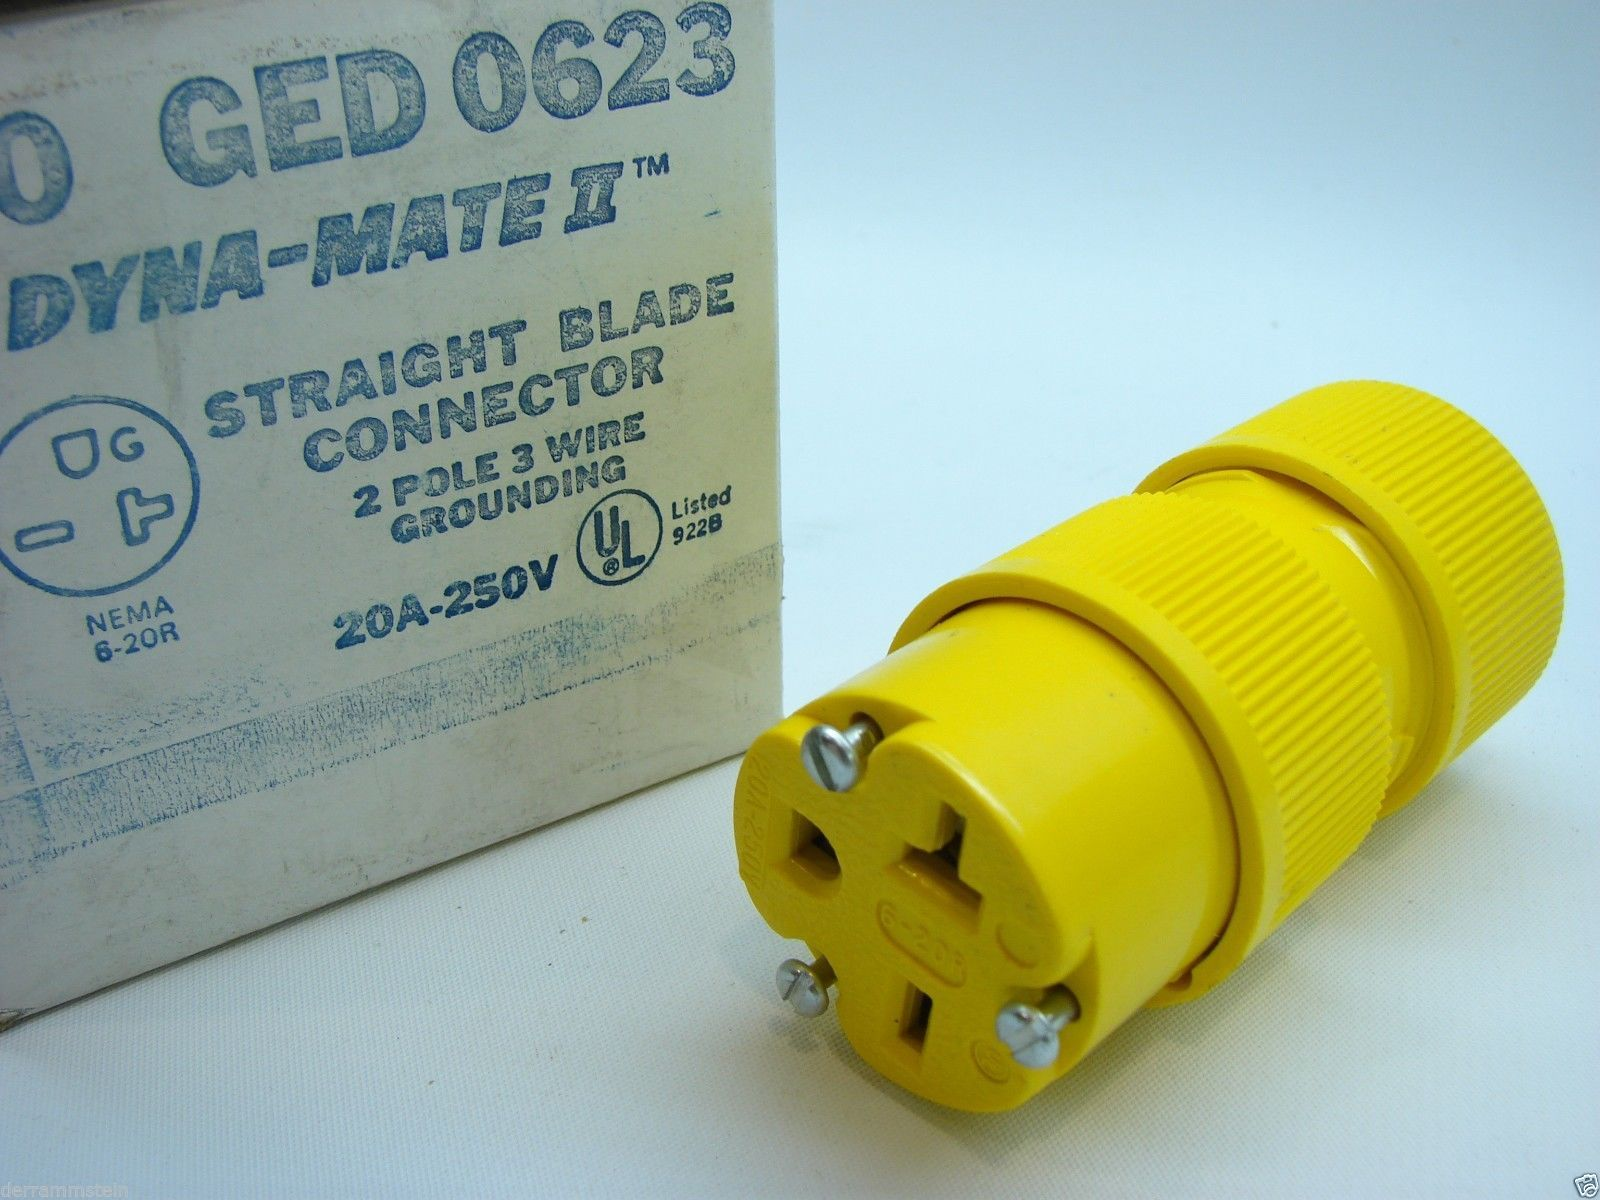 GE GED0623 Dyna-Mate II Straight Blade Connector 2P/3W NEMA 6-20R 250V 20A t1